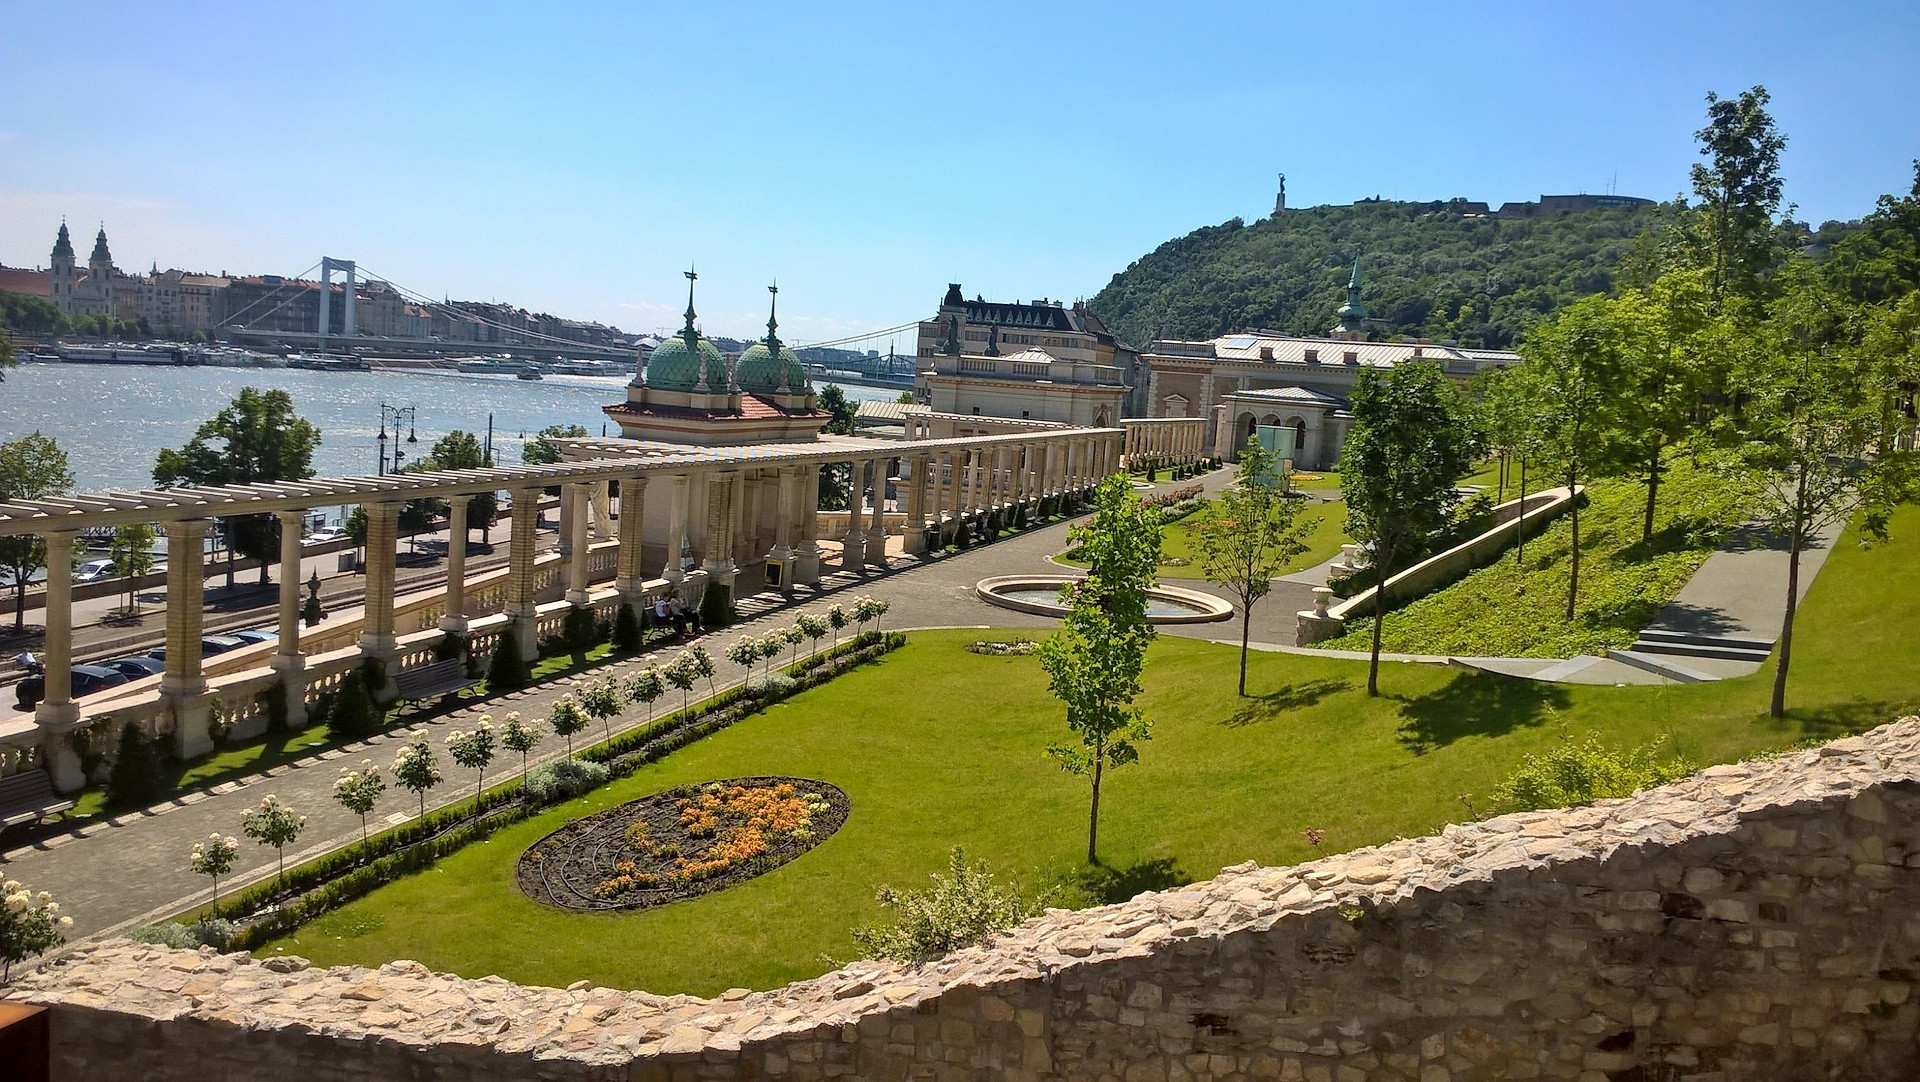 The Buda Castle Garden Bazaar. Buda Castle Walk - Buda Walking Tour